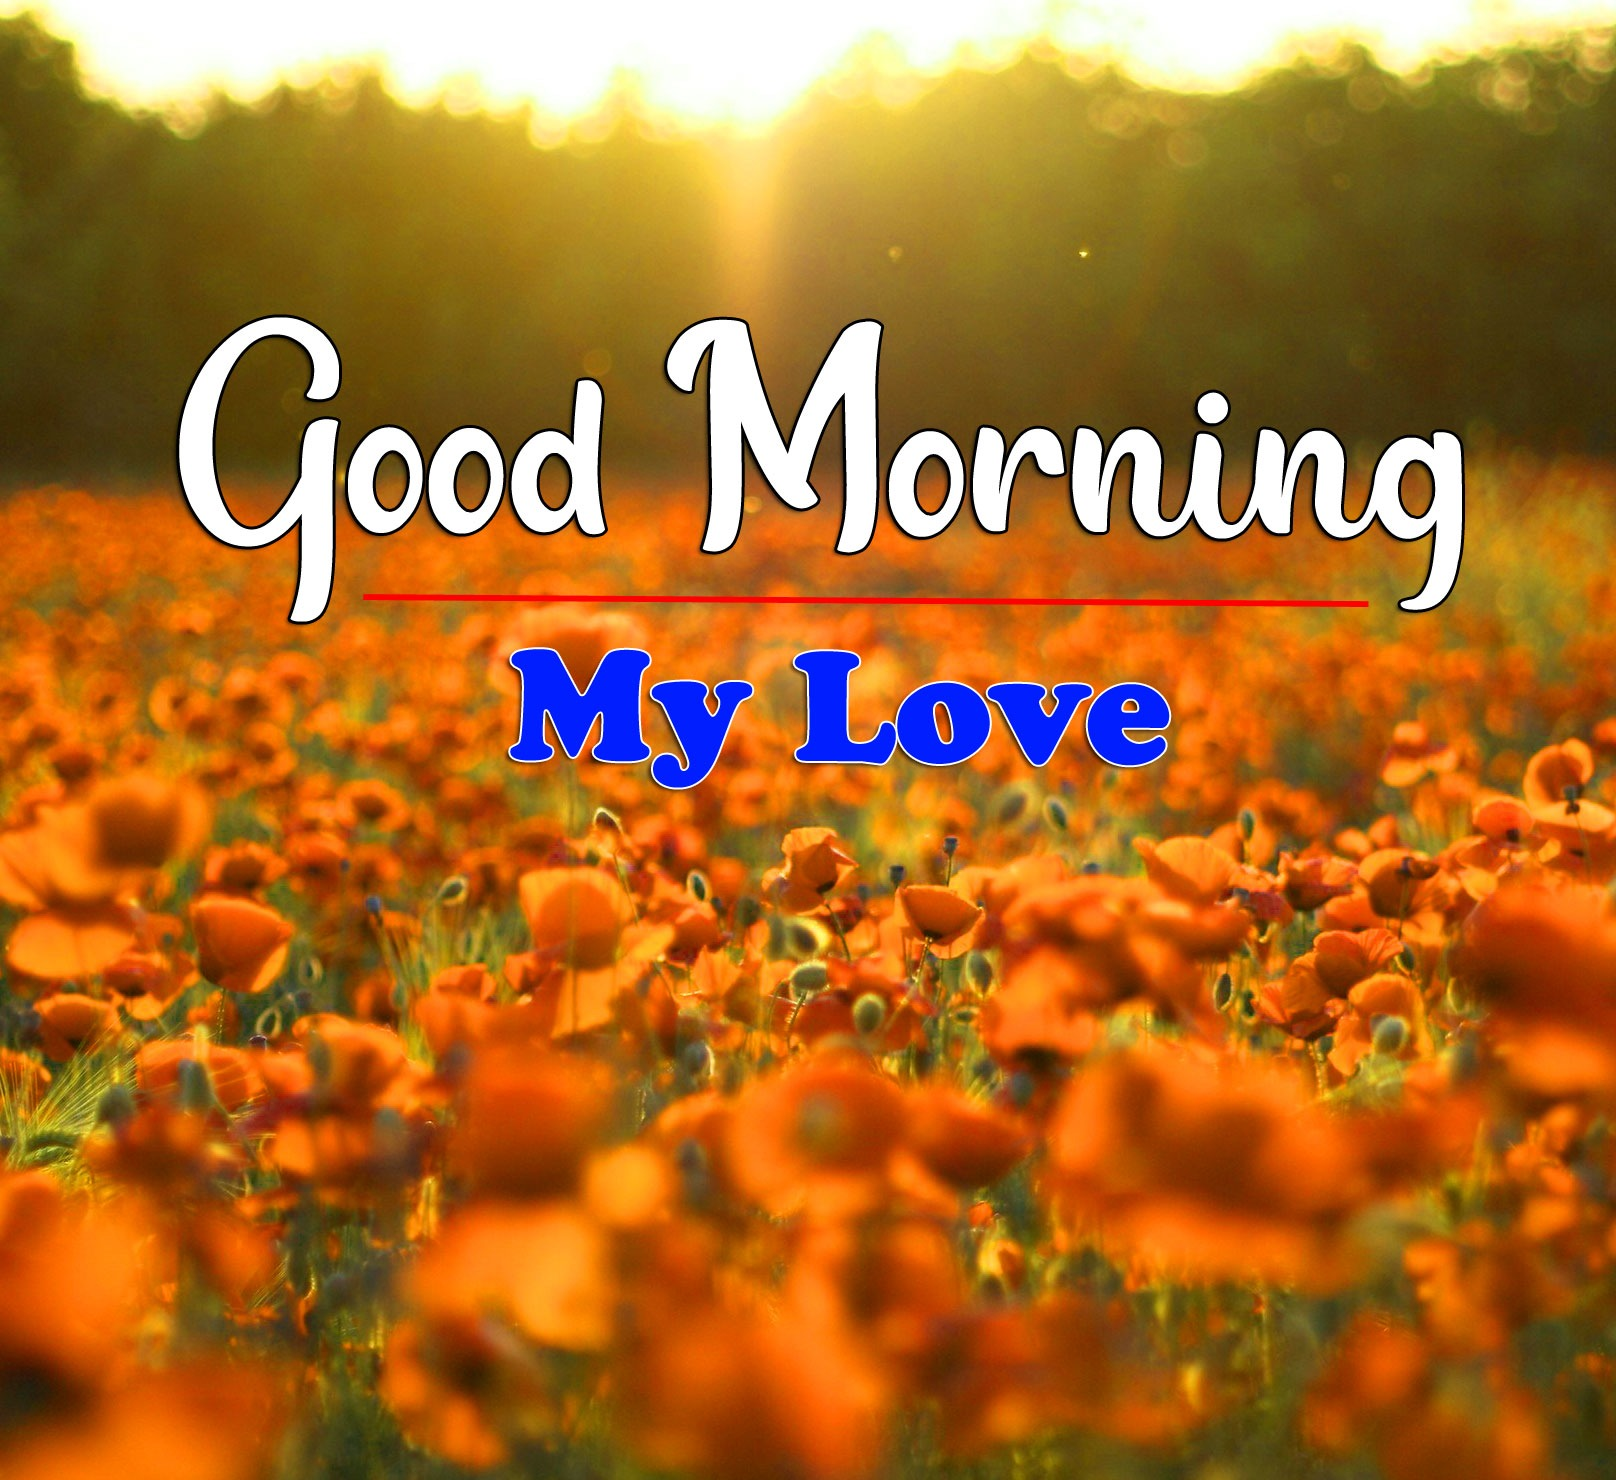 HD Latest Good Morning Photo Download